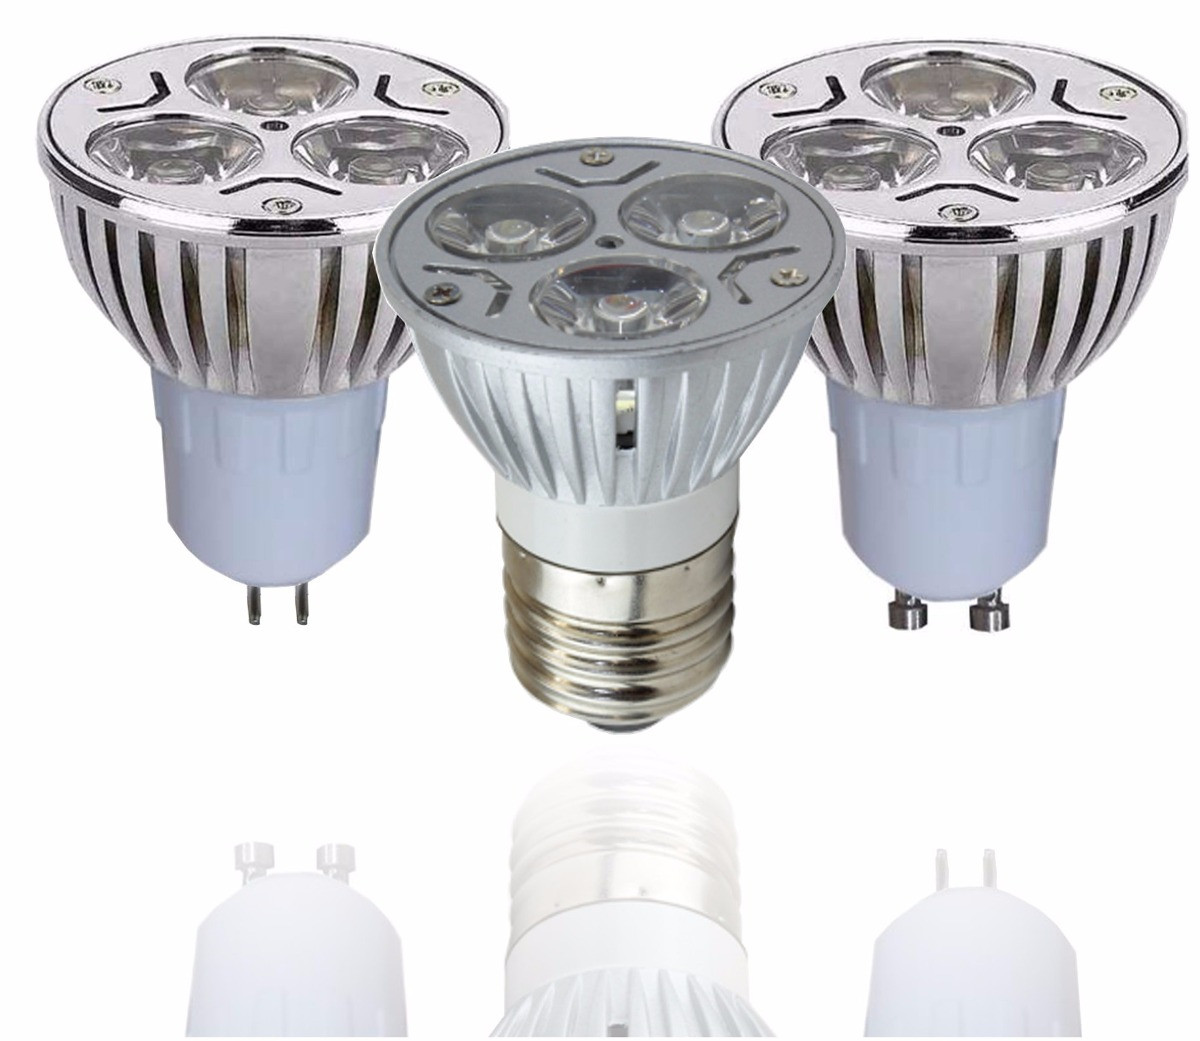 Focos Led Empotrables Extraplanos Contemporáneo Foco Led Dicroico E27 Y Mr16 De 3w 127 Watts $ 35 00 En Of Focos Led Empotrables Extraplanos Brillante Downlights Led Extraplanos • Prar Line • Desde 4 29€